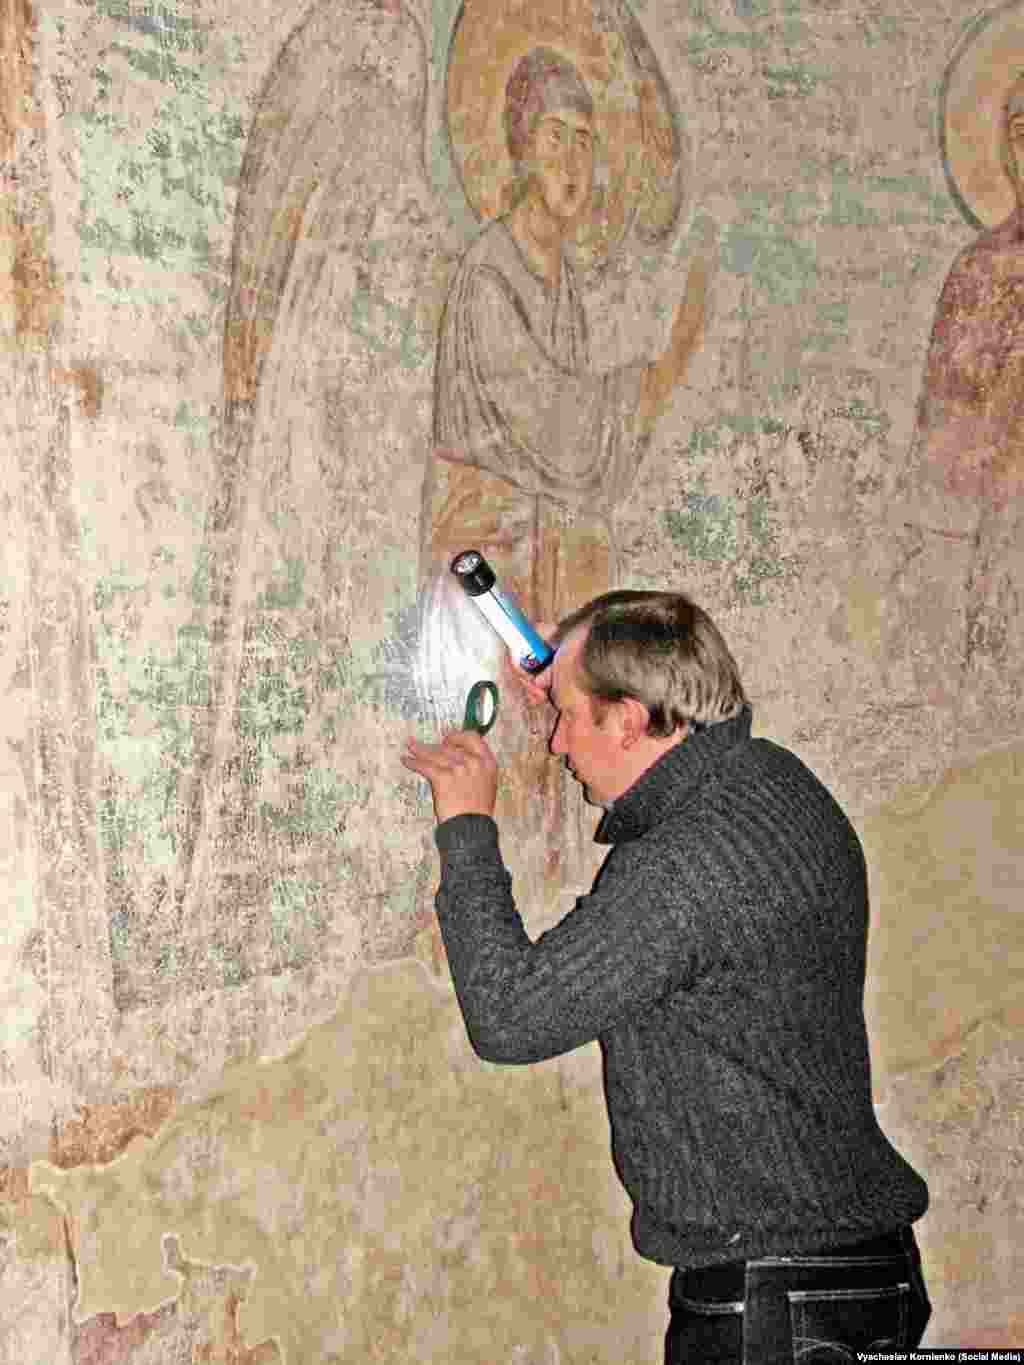 """Kornienko studying old graffiti near the beginning of what would become a 15-year project.  The historian says that """"people wrote graffiti for their contemporaries, but these records allow us to look at the world through the eyes of the people of that time."""""""